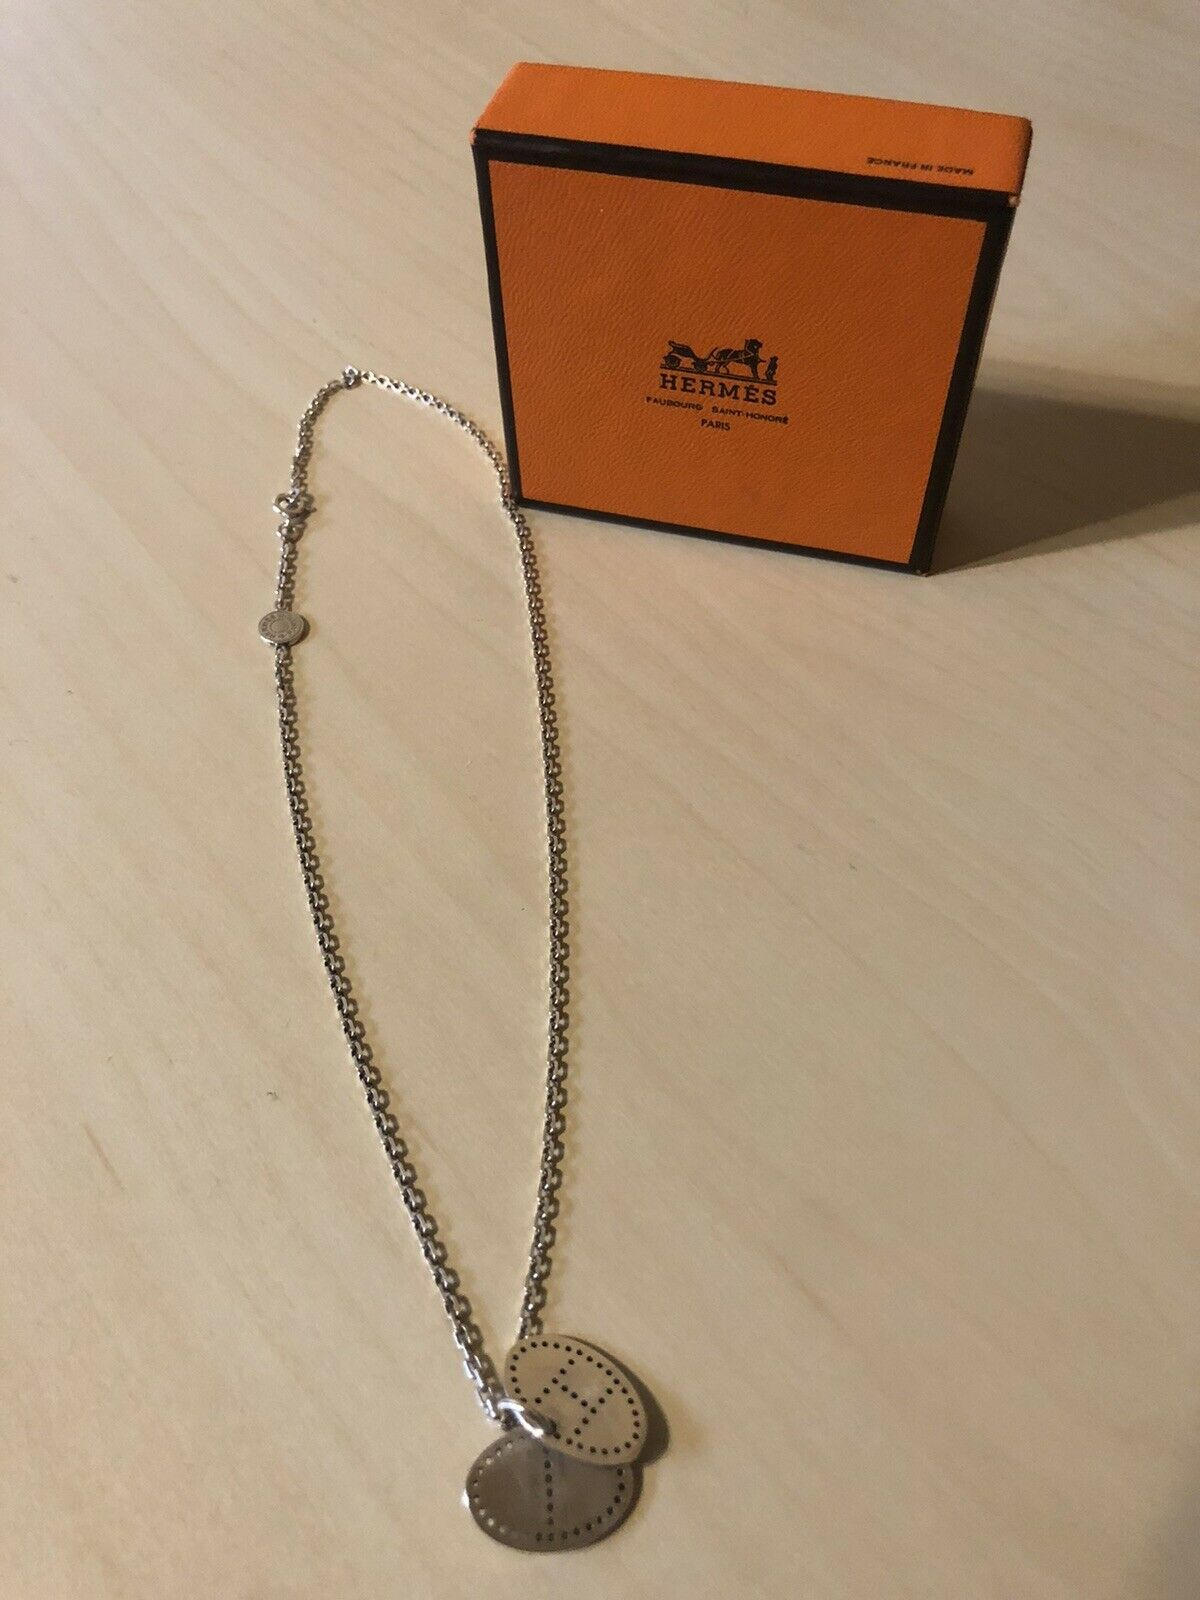 Authentic HERMES Eclipse Necklace 925 Sterling Silver